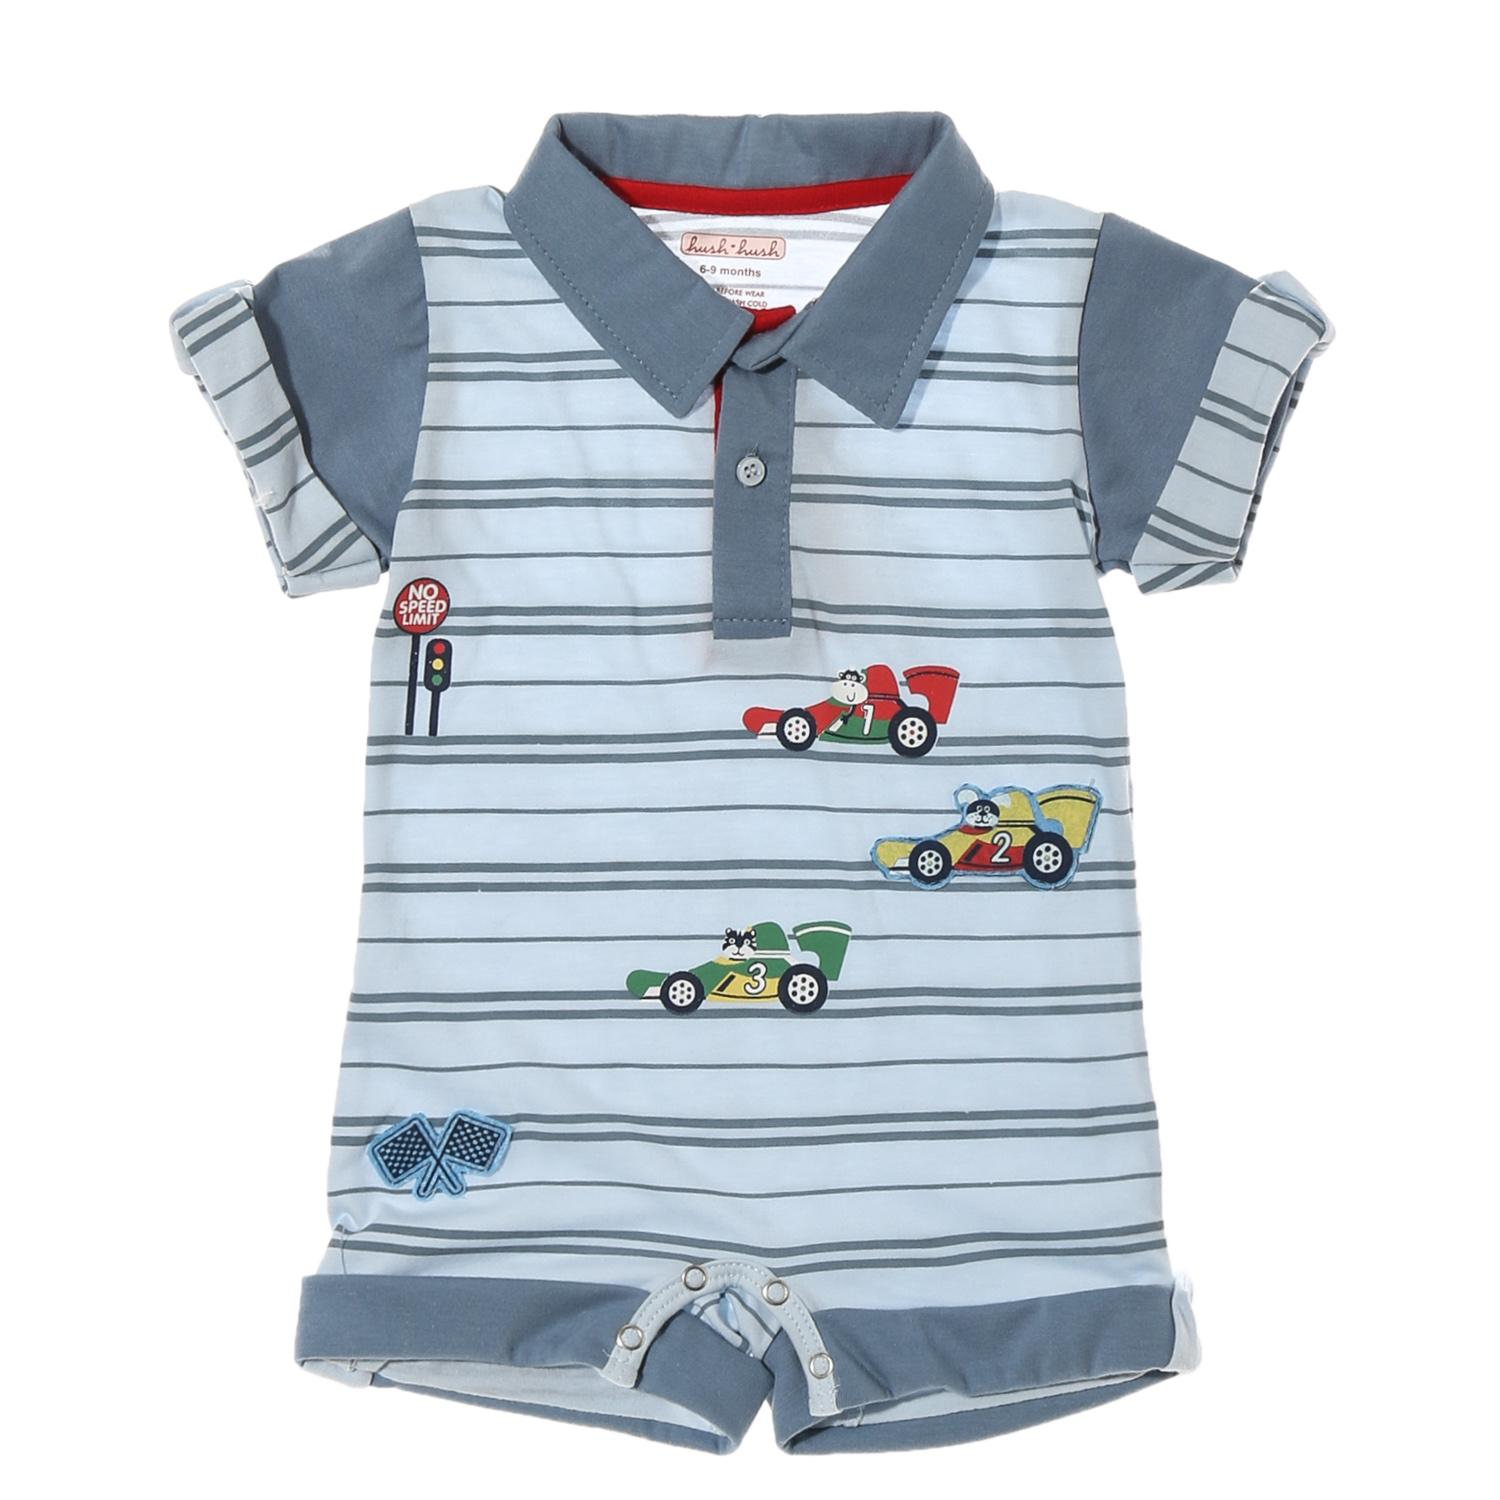 0b7e20799cc97 Baby Boy Overalls for sale - Boys Jumpers online brands, prices ...